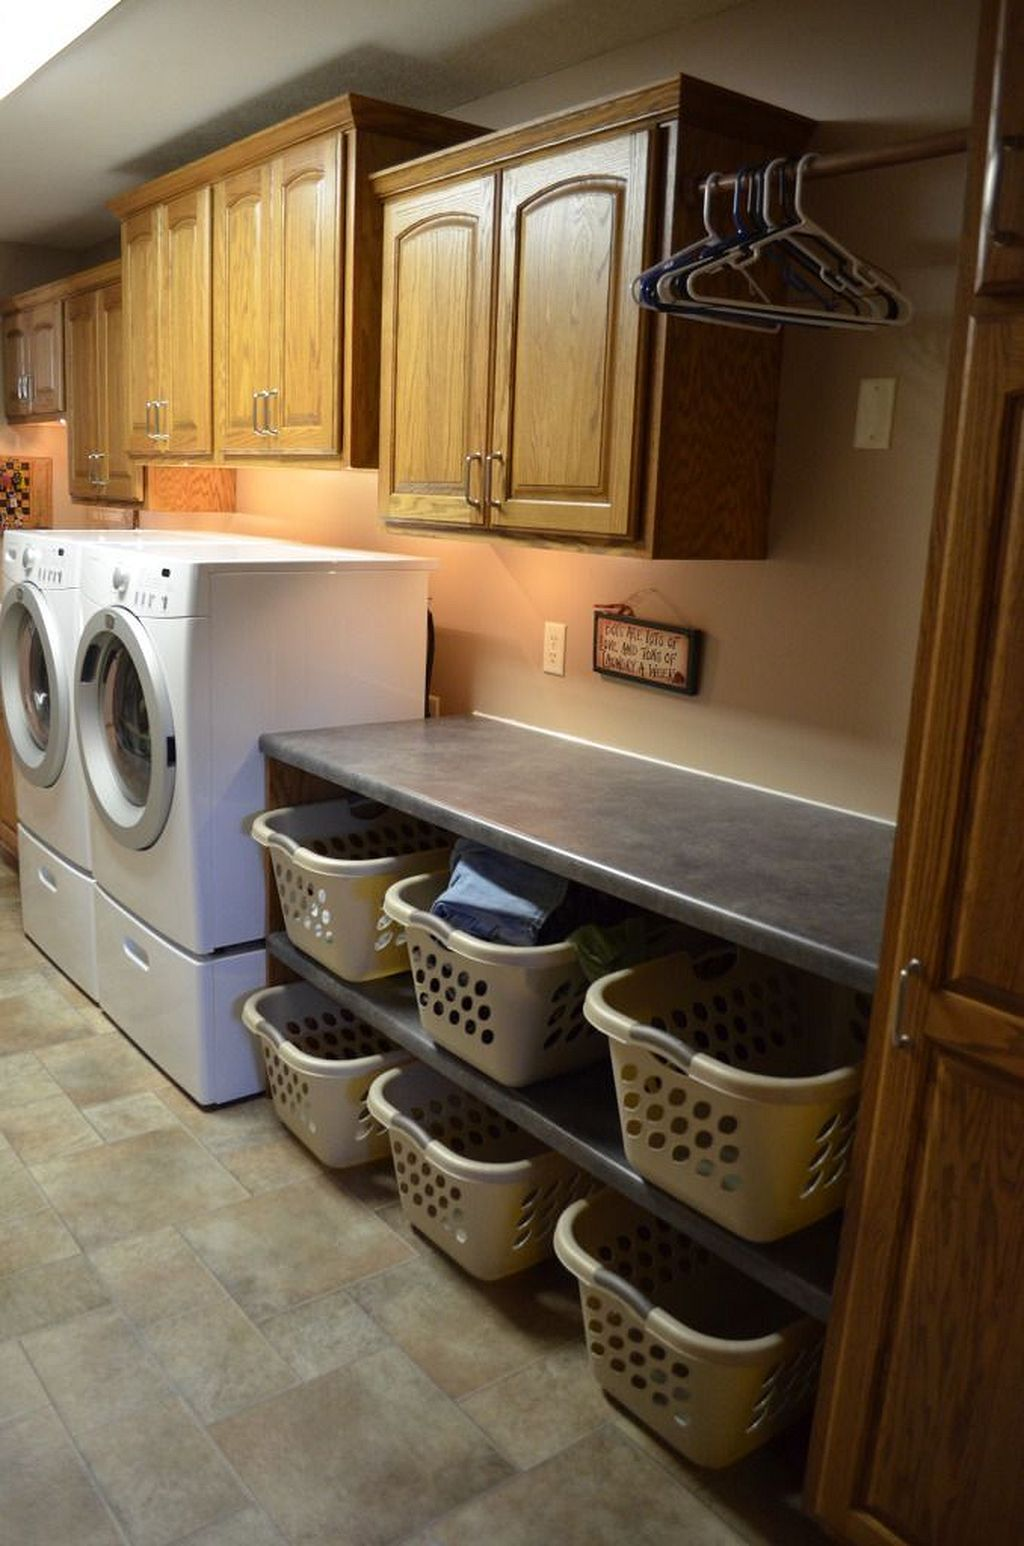 50+ Easy Laundry Room Organization Ideas #laundryrooms